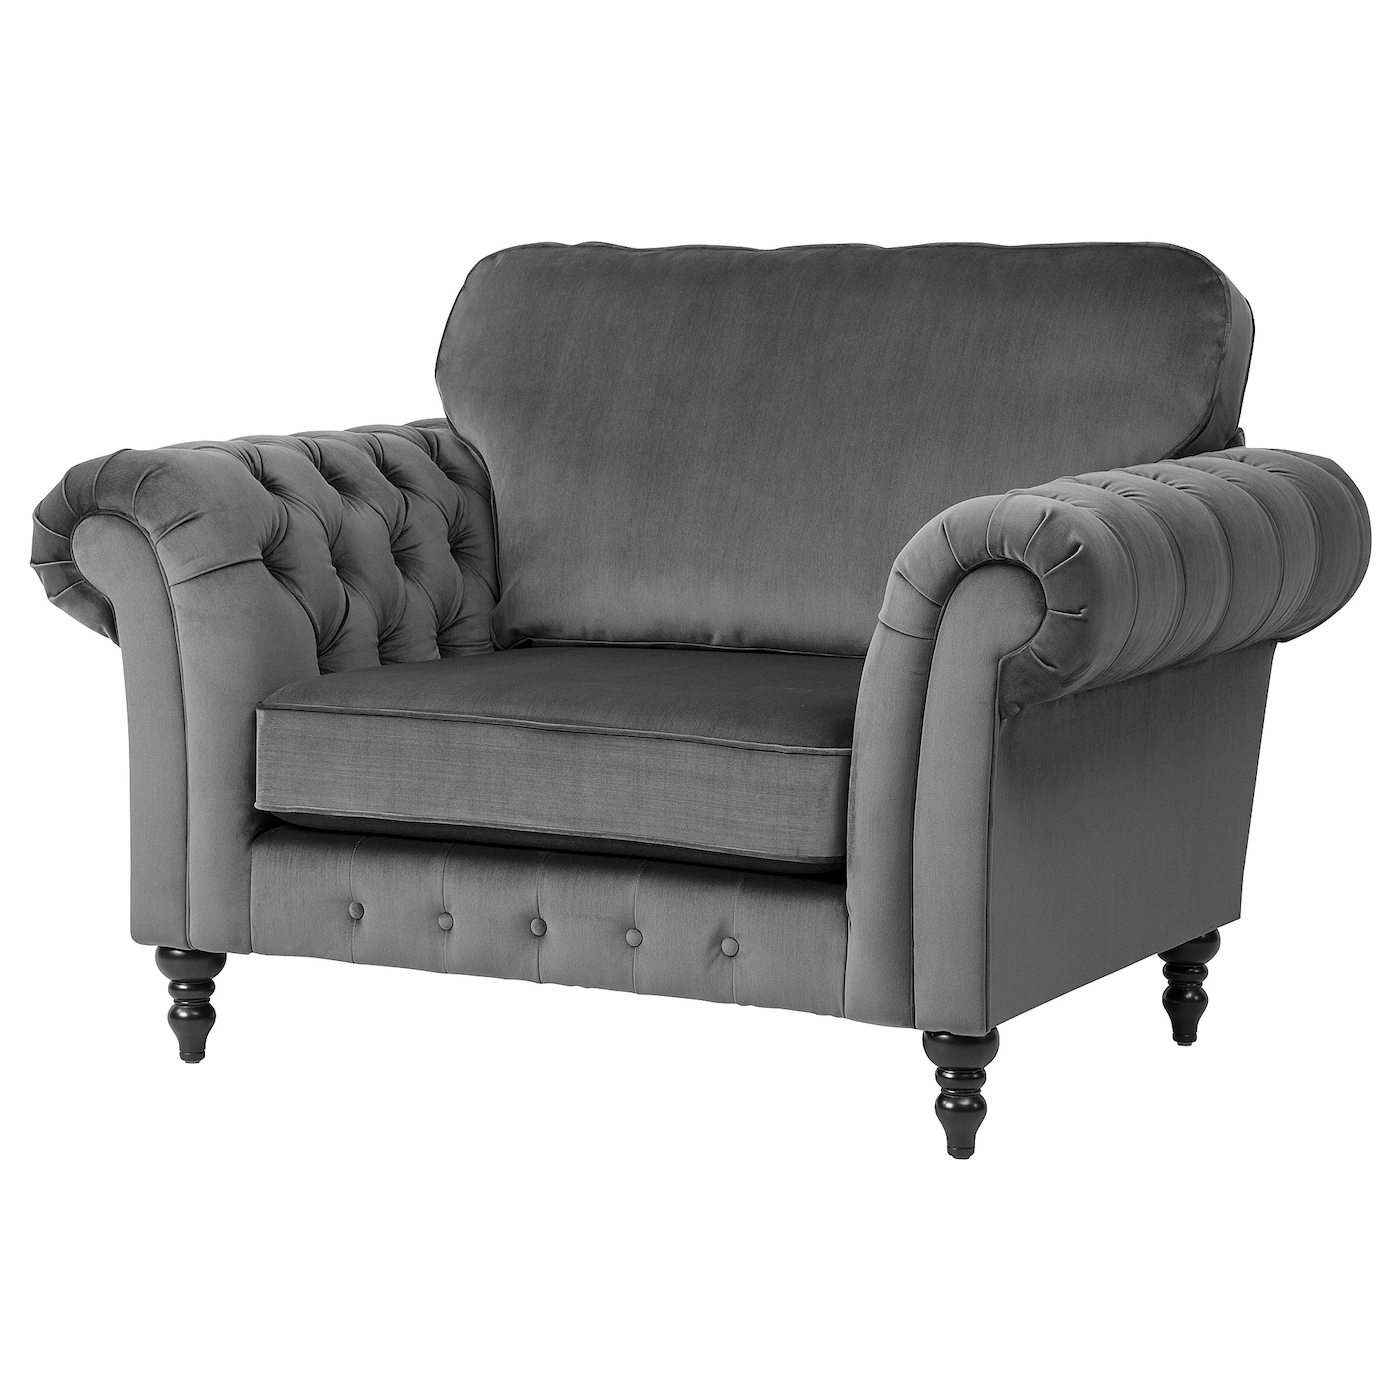 GREVIE Armchair - velvet grey - IKEA Ireland